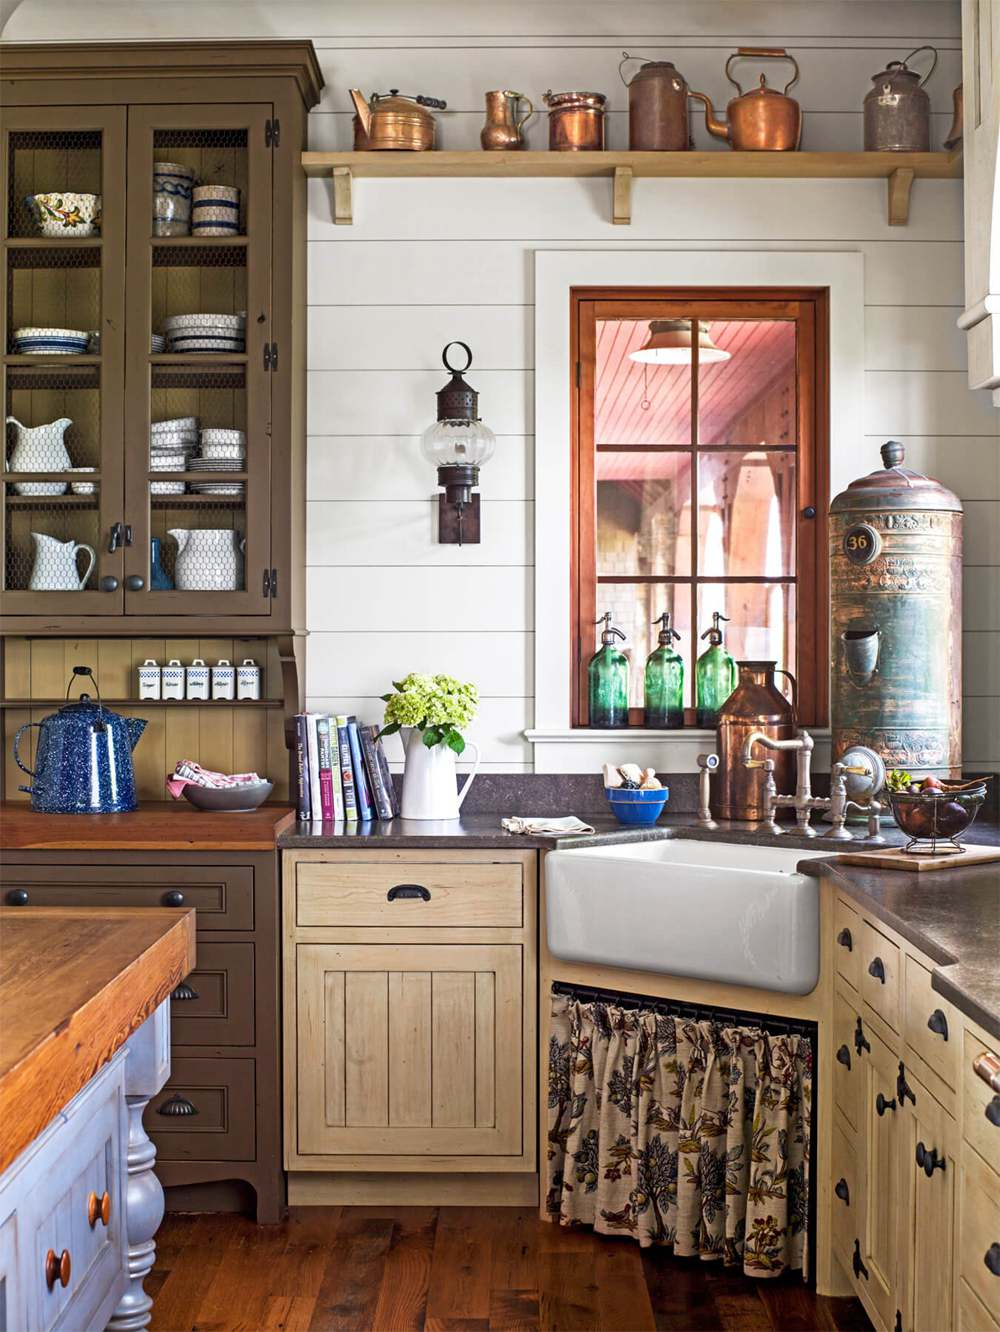 9. Vintage Kitchen Decor Idea